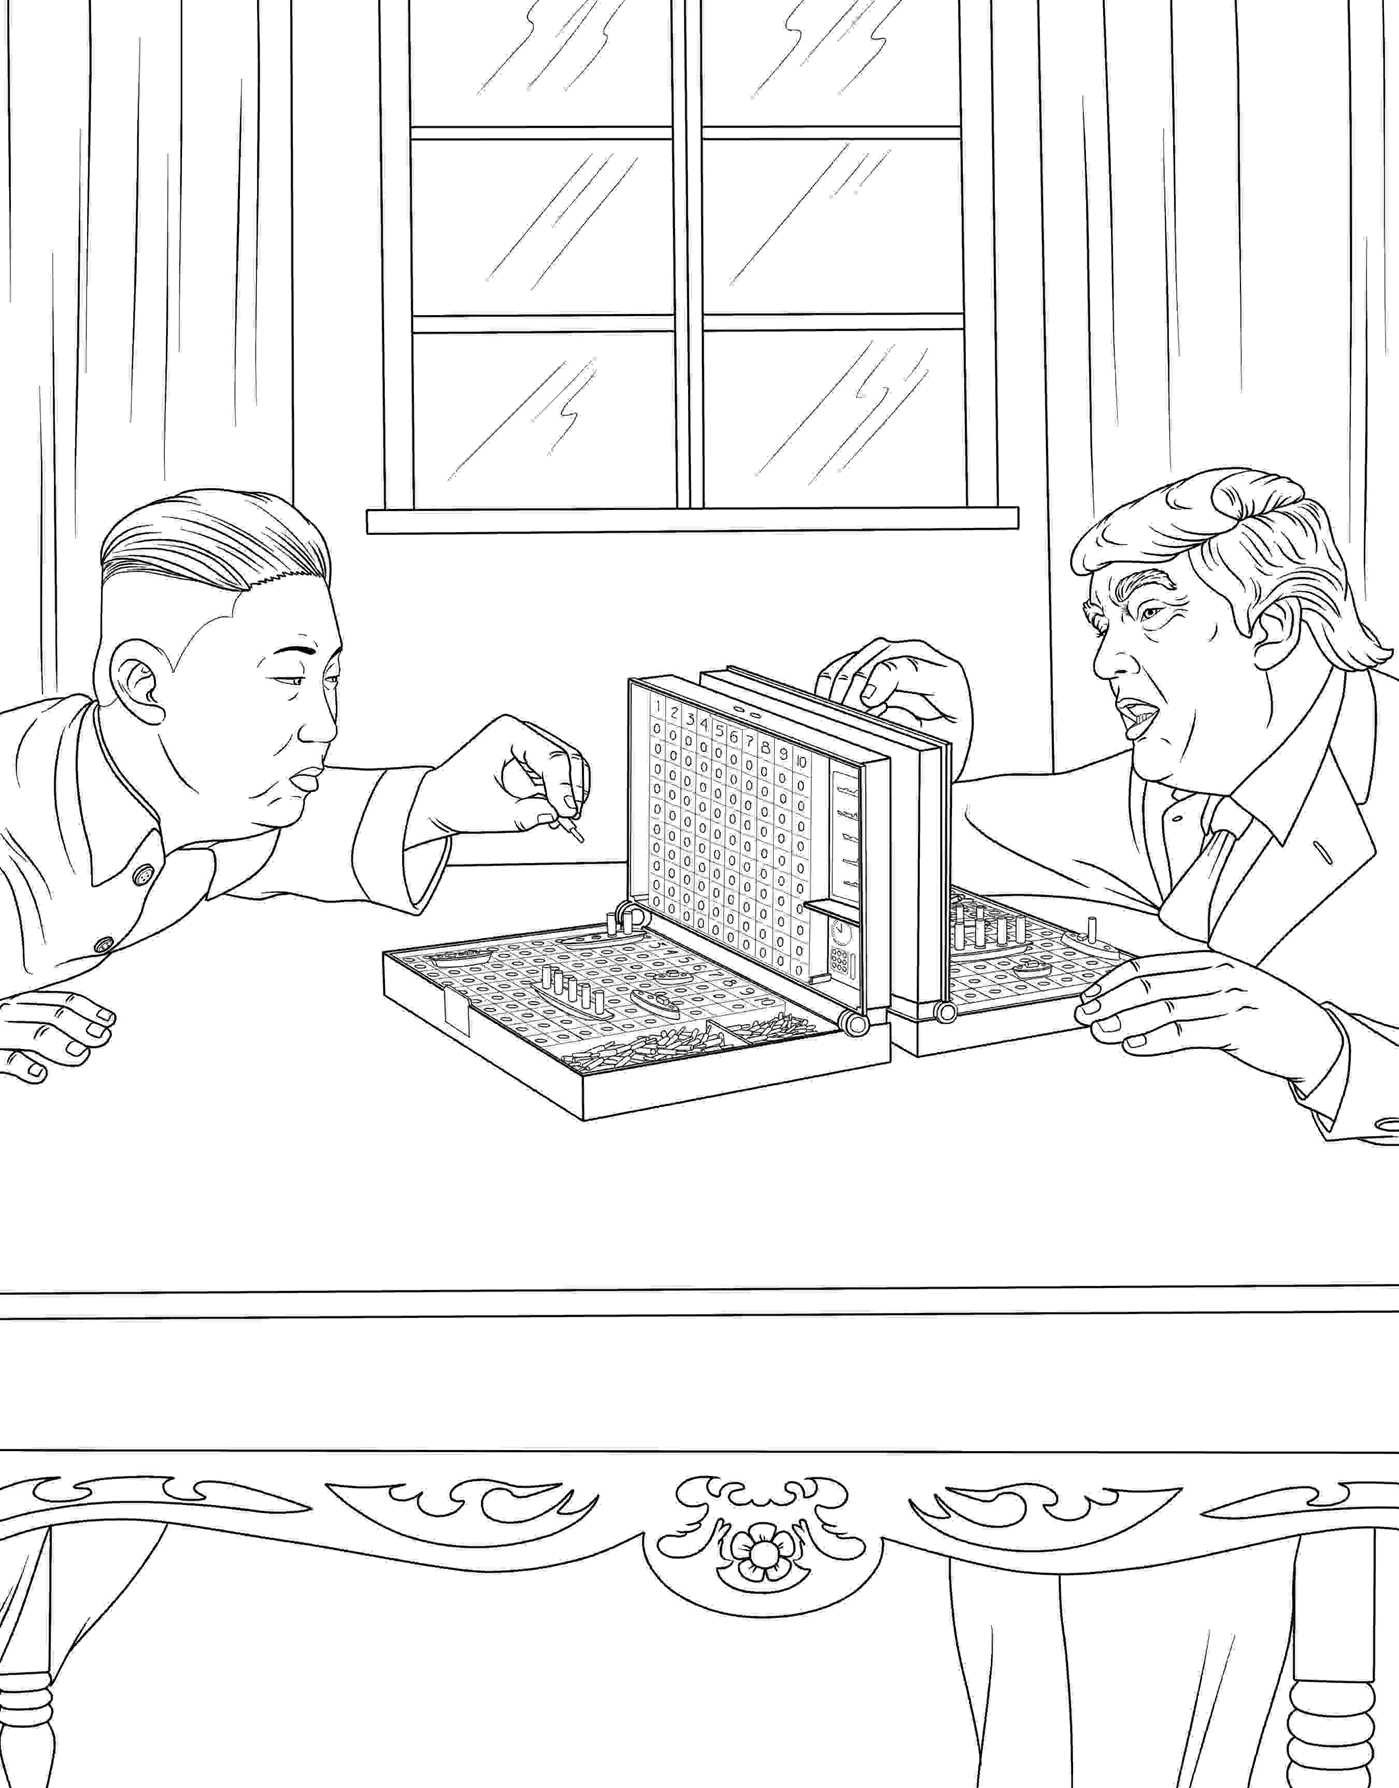 The Trump Coloring Book | Book by M. G. Anthony | Official Publisher ...